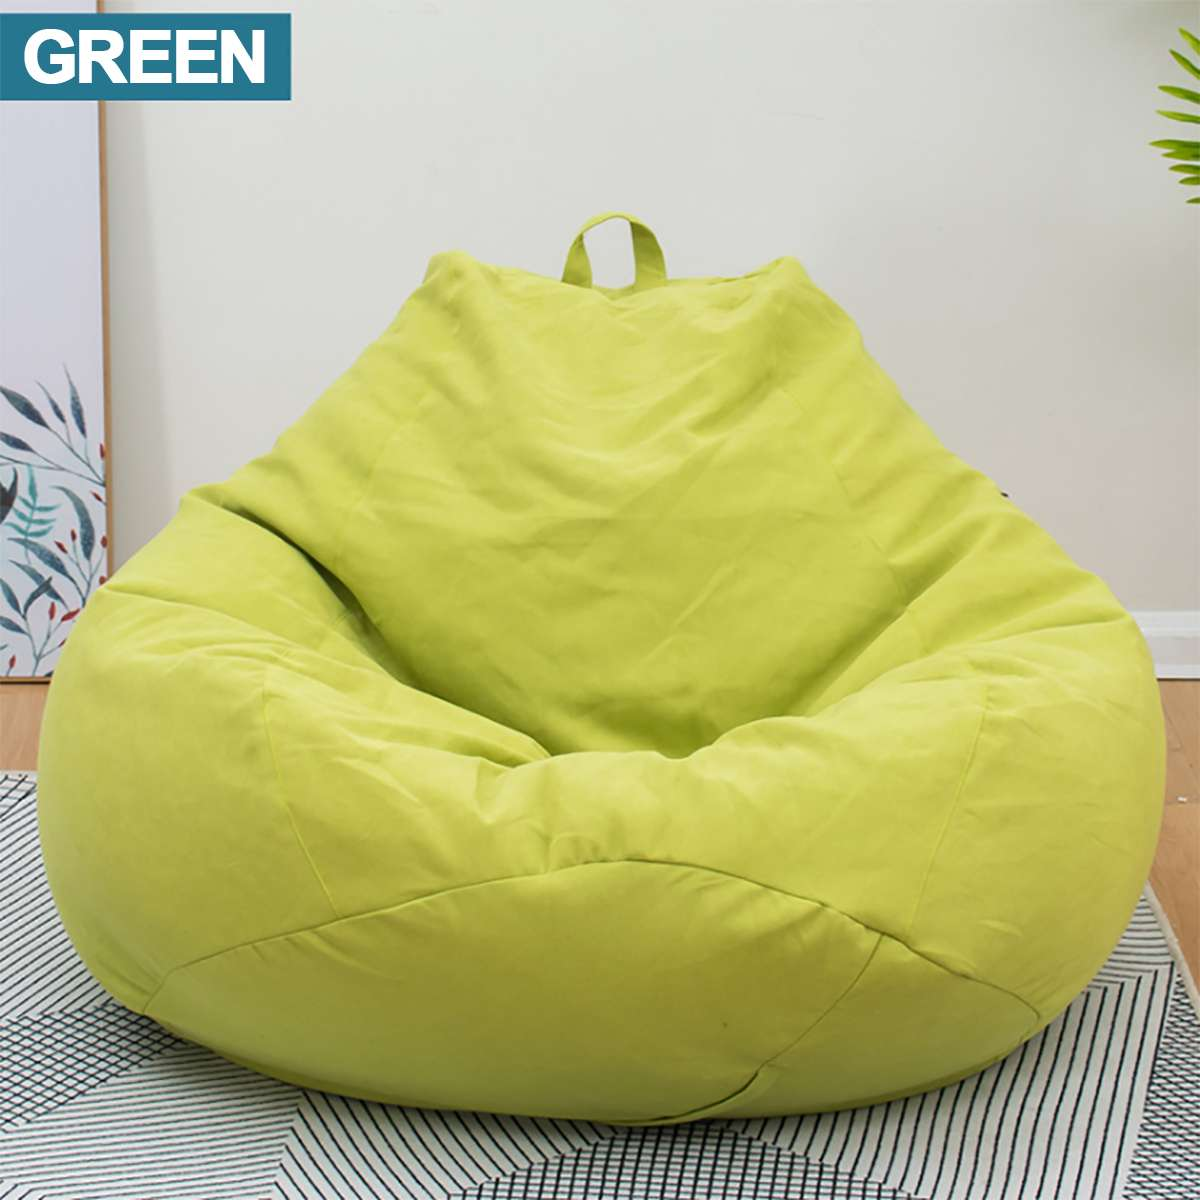 Stupendous Details About Green Lazy Beanbag Sofas Waterproof Stuffed Animal Storage Toy Solid Short Links Chair Design For Home Short Linksinfo